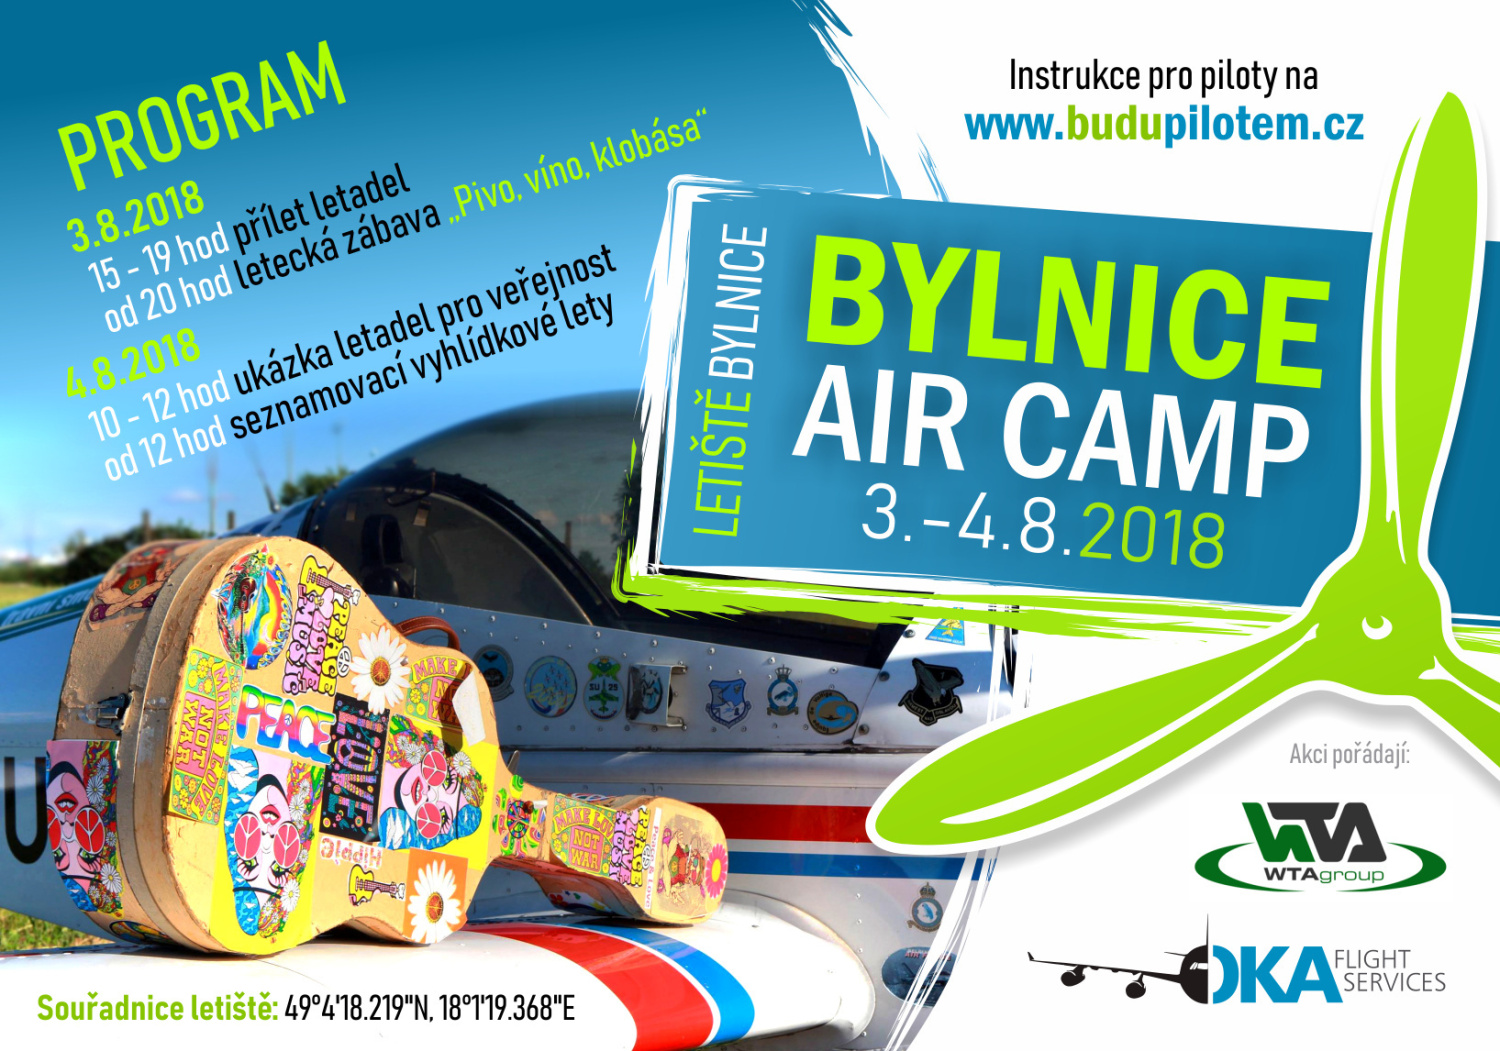 Bylnice Air Camp 2018